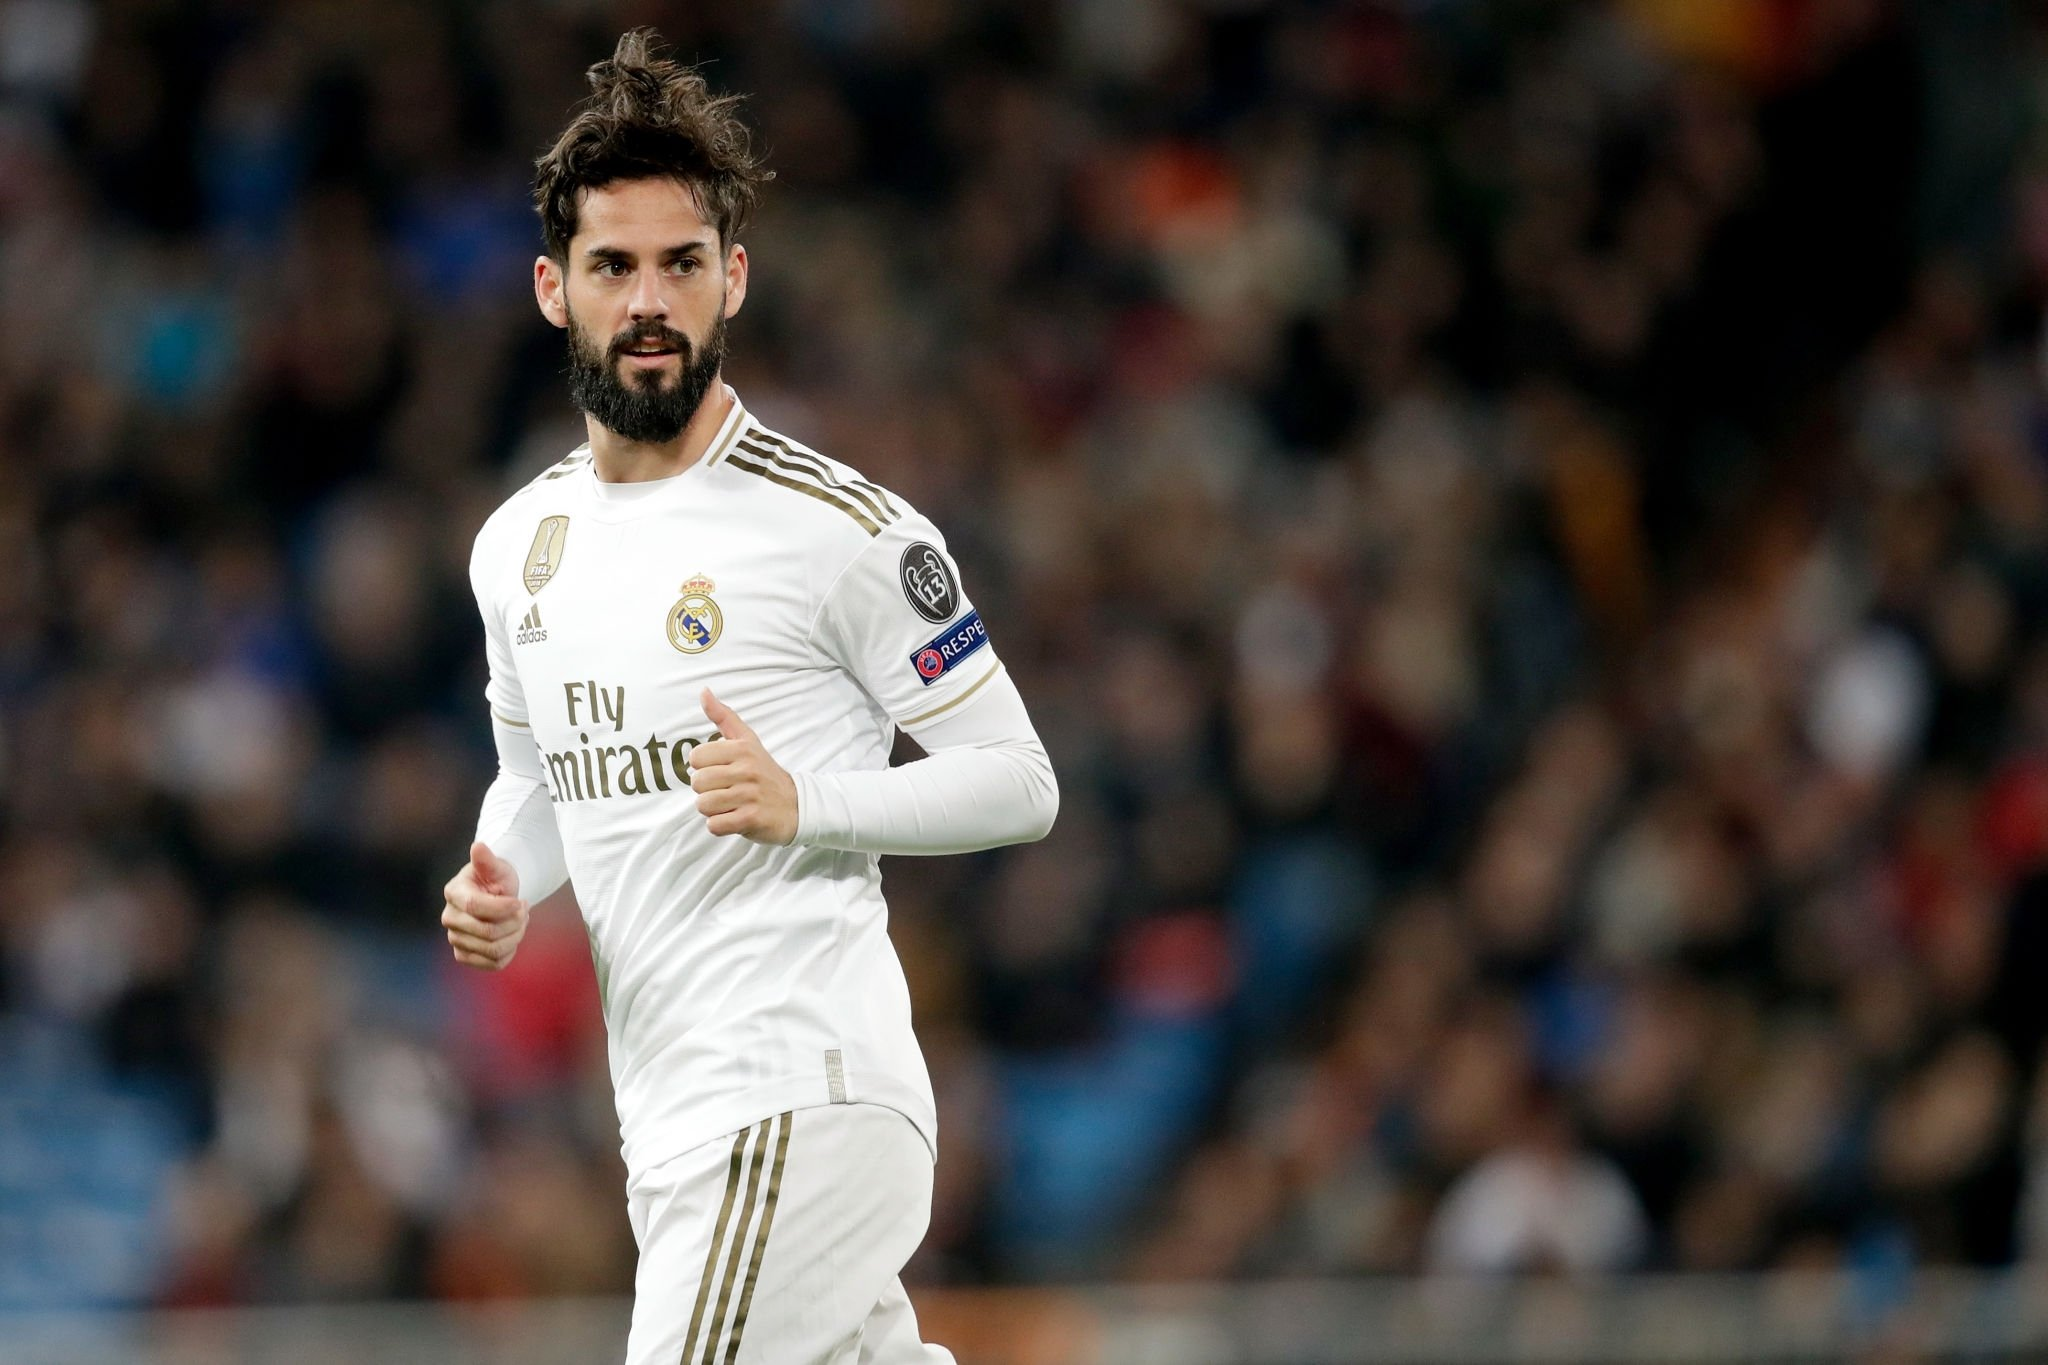 Isco: Profile of Real Madrid outcast set for January move - Bóng Đá